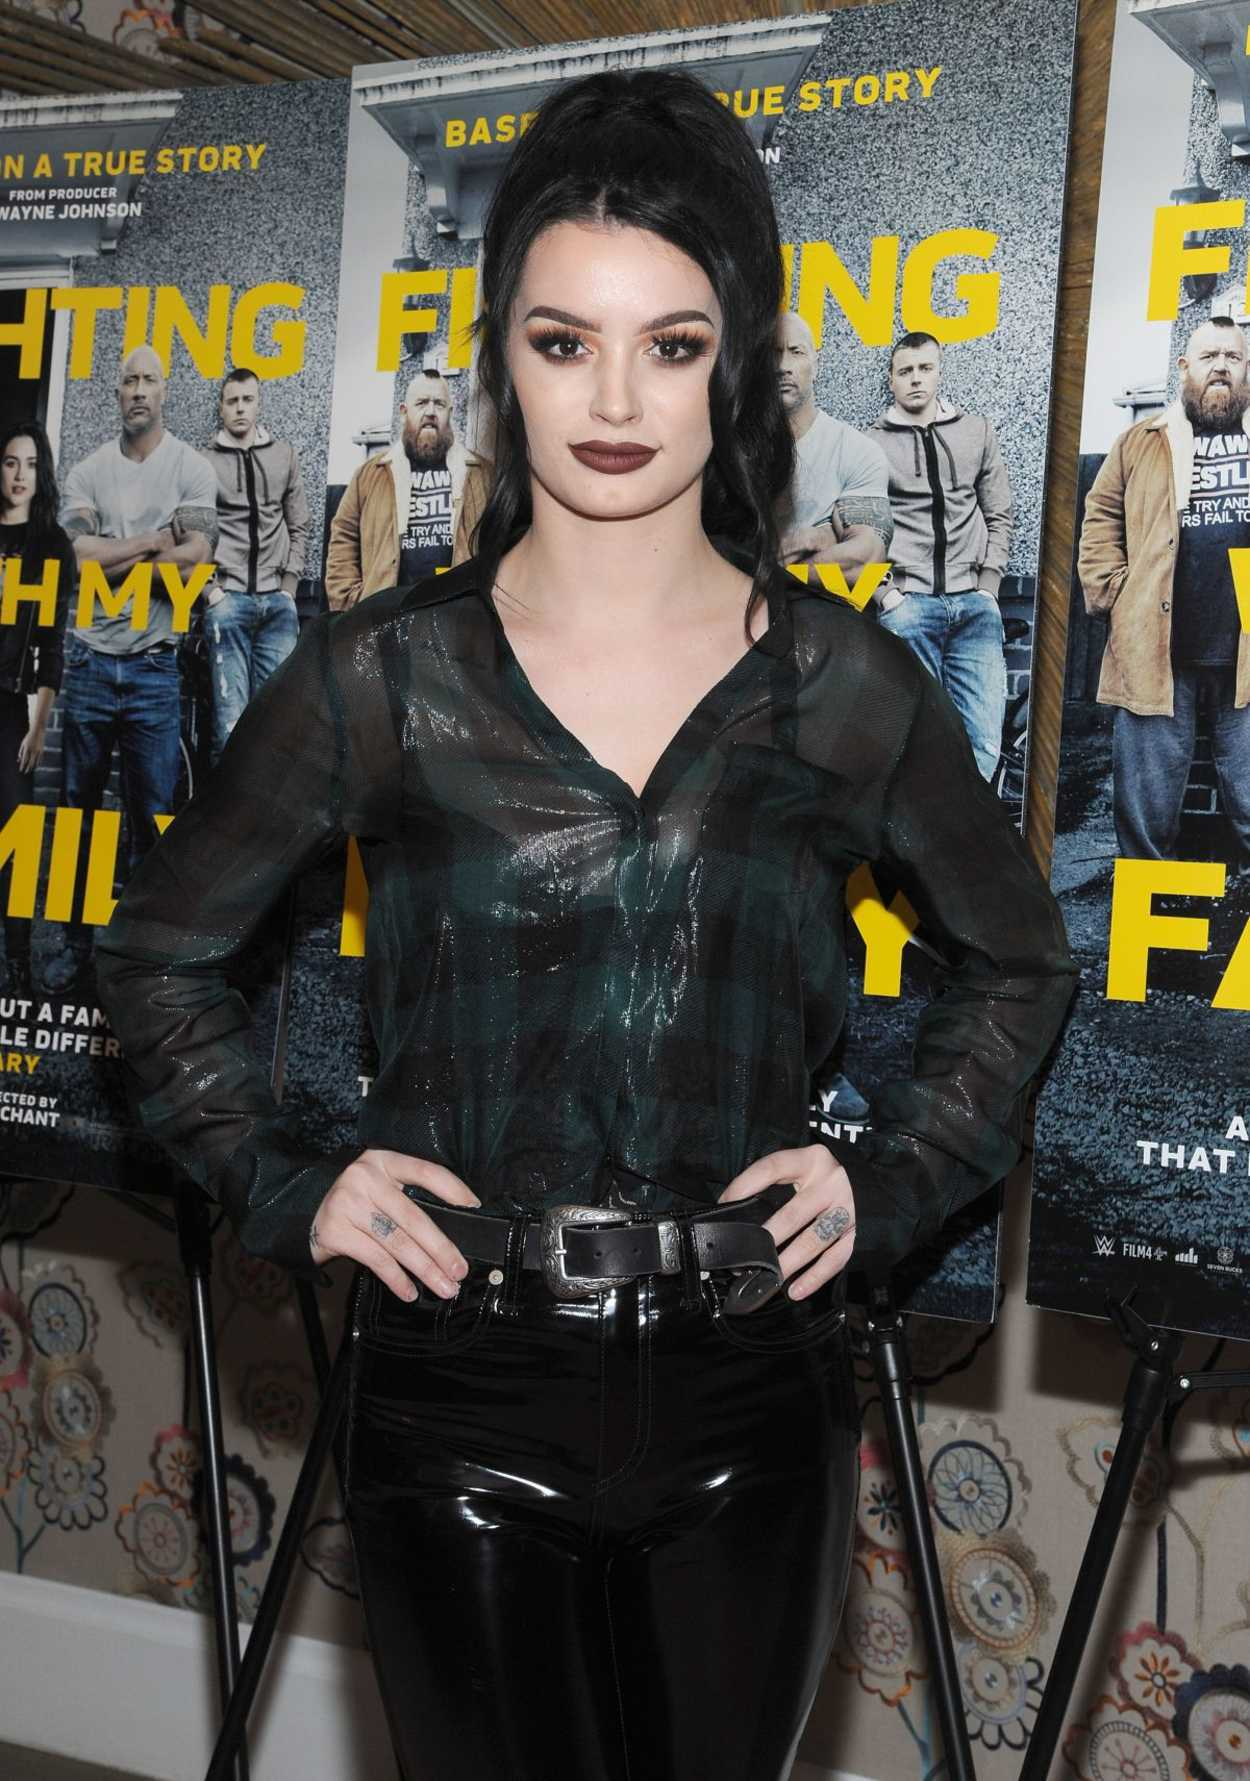 Saraya Jade Bevis Attends Fighting With My Family Special